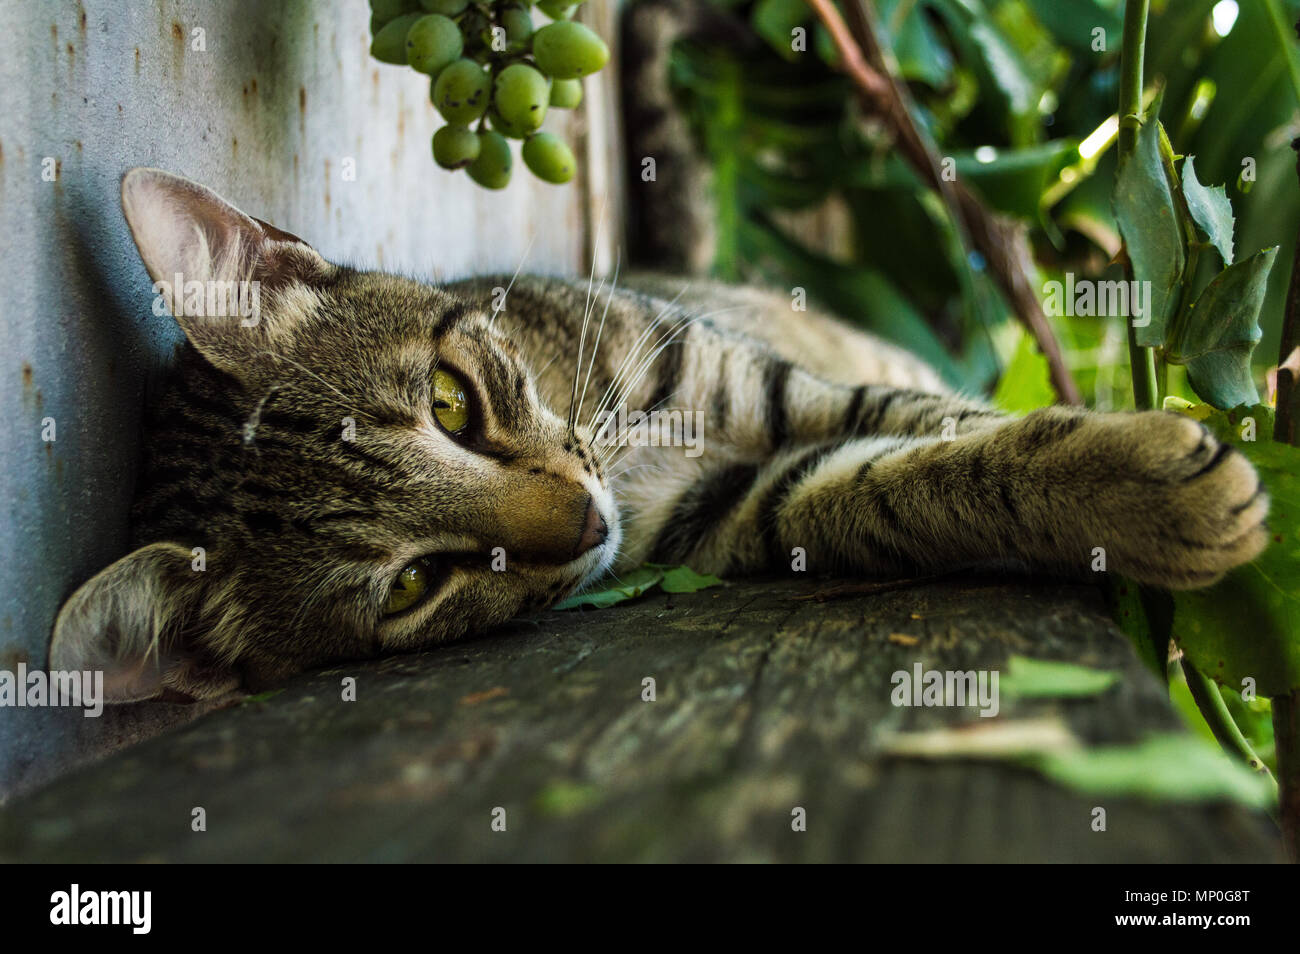 Close-up of an domestic cat - Stock Image